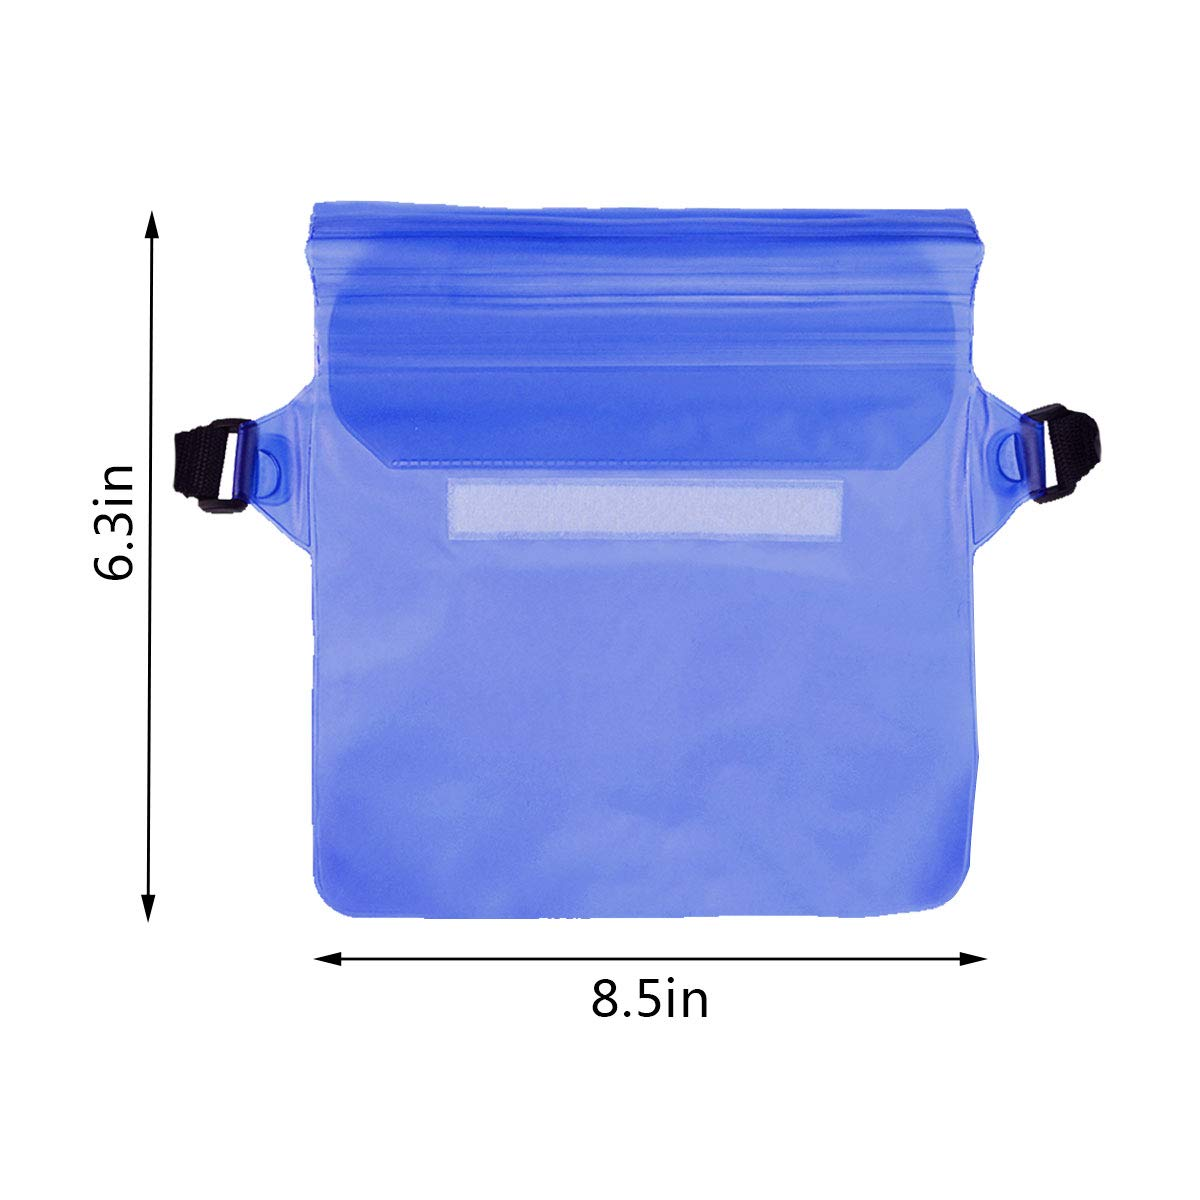 mifengdaer 2PCS Waterproof Pouch with Waist Strap Triple Top Closure Strip Seal System Blue Waterproof Waist Bag Case Pouch Watertight Sealed Dry Bag Case with Adjustable Belt